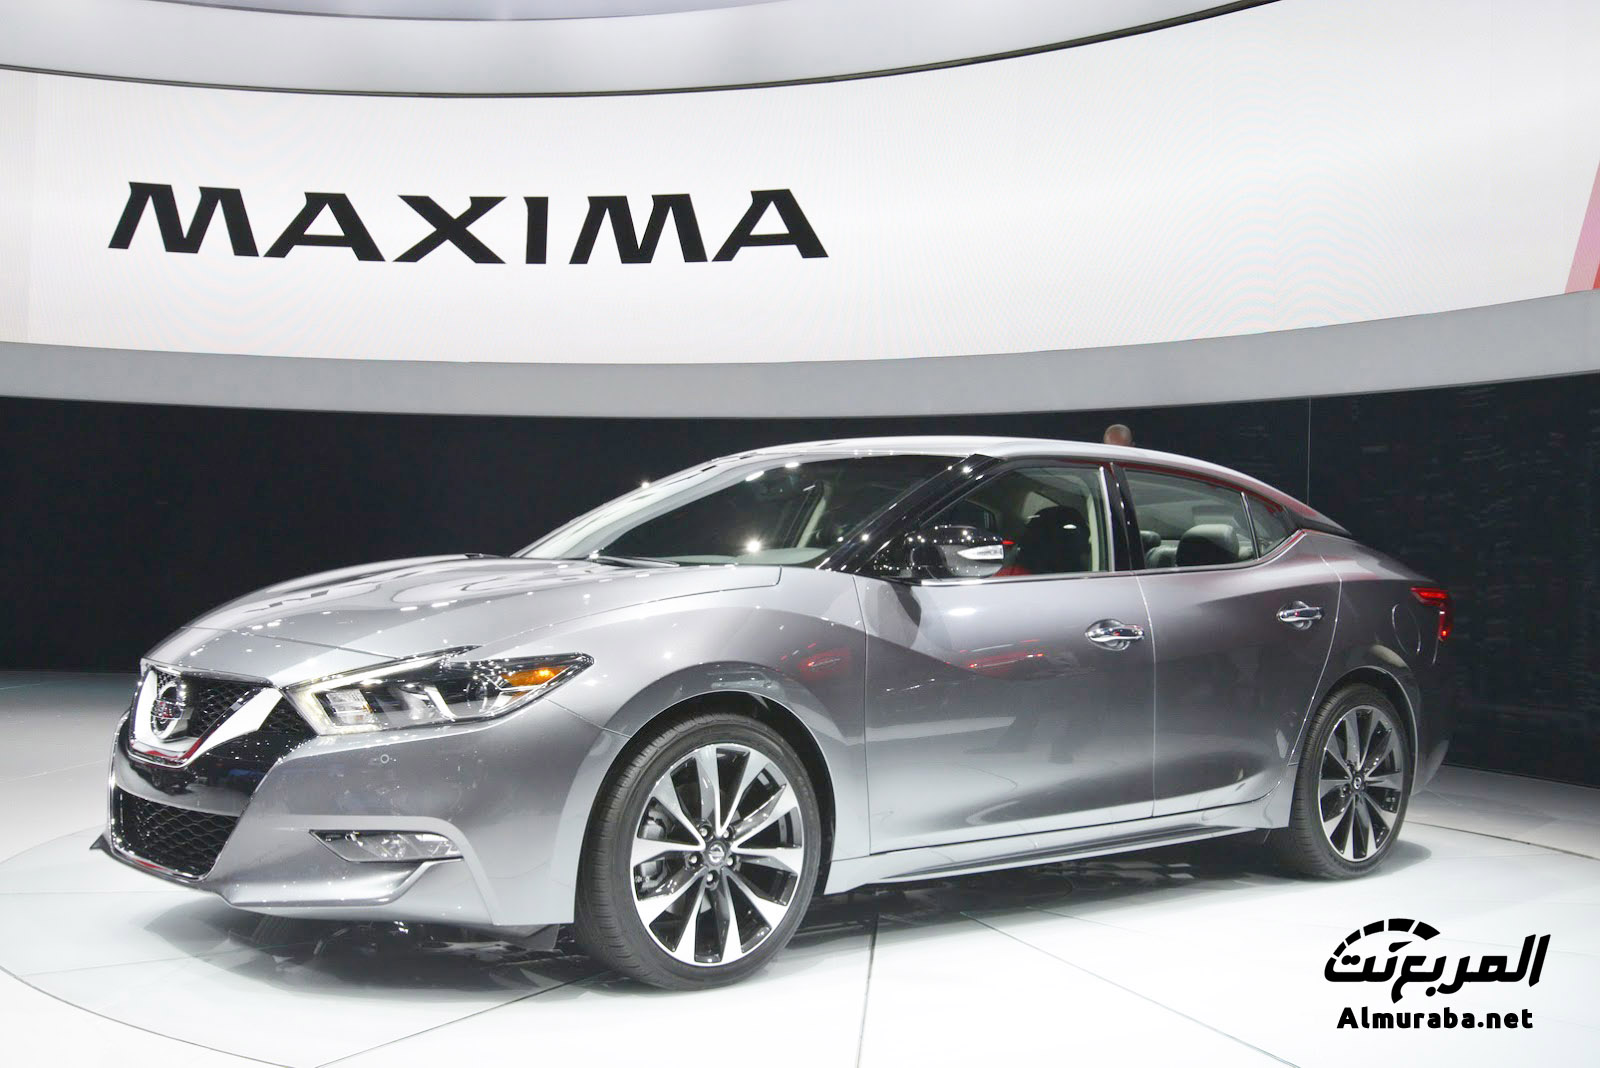 2015 Nissan Maxima >> 16 Maxima Pictures to Pin on Pinterest - PinsDaddy